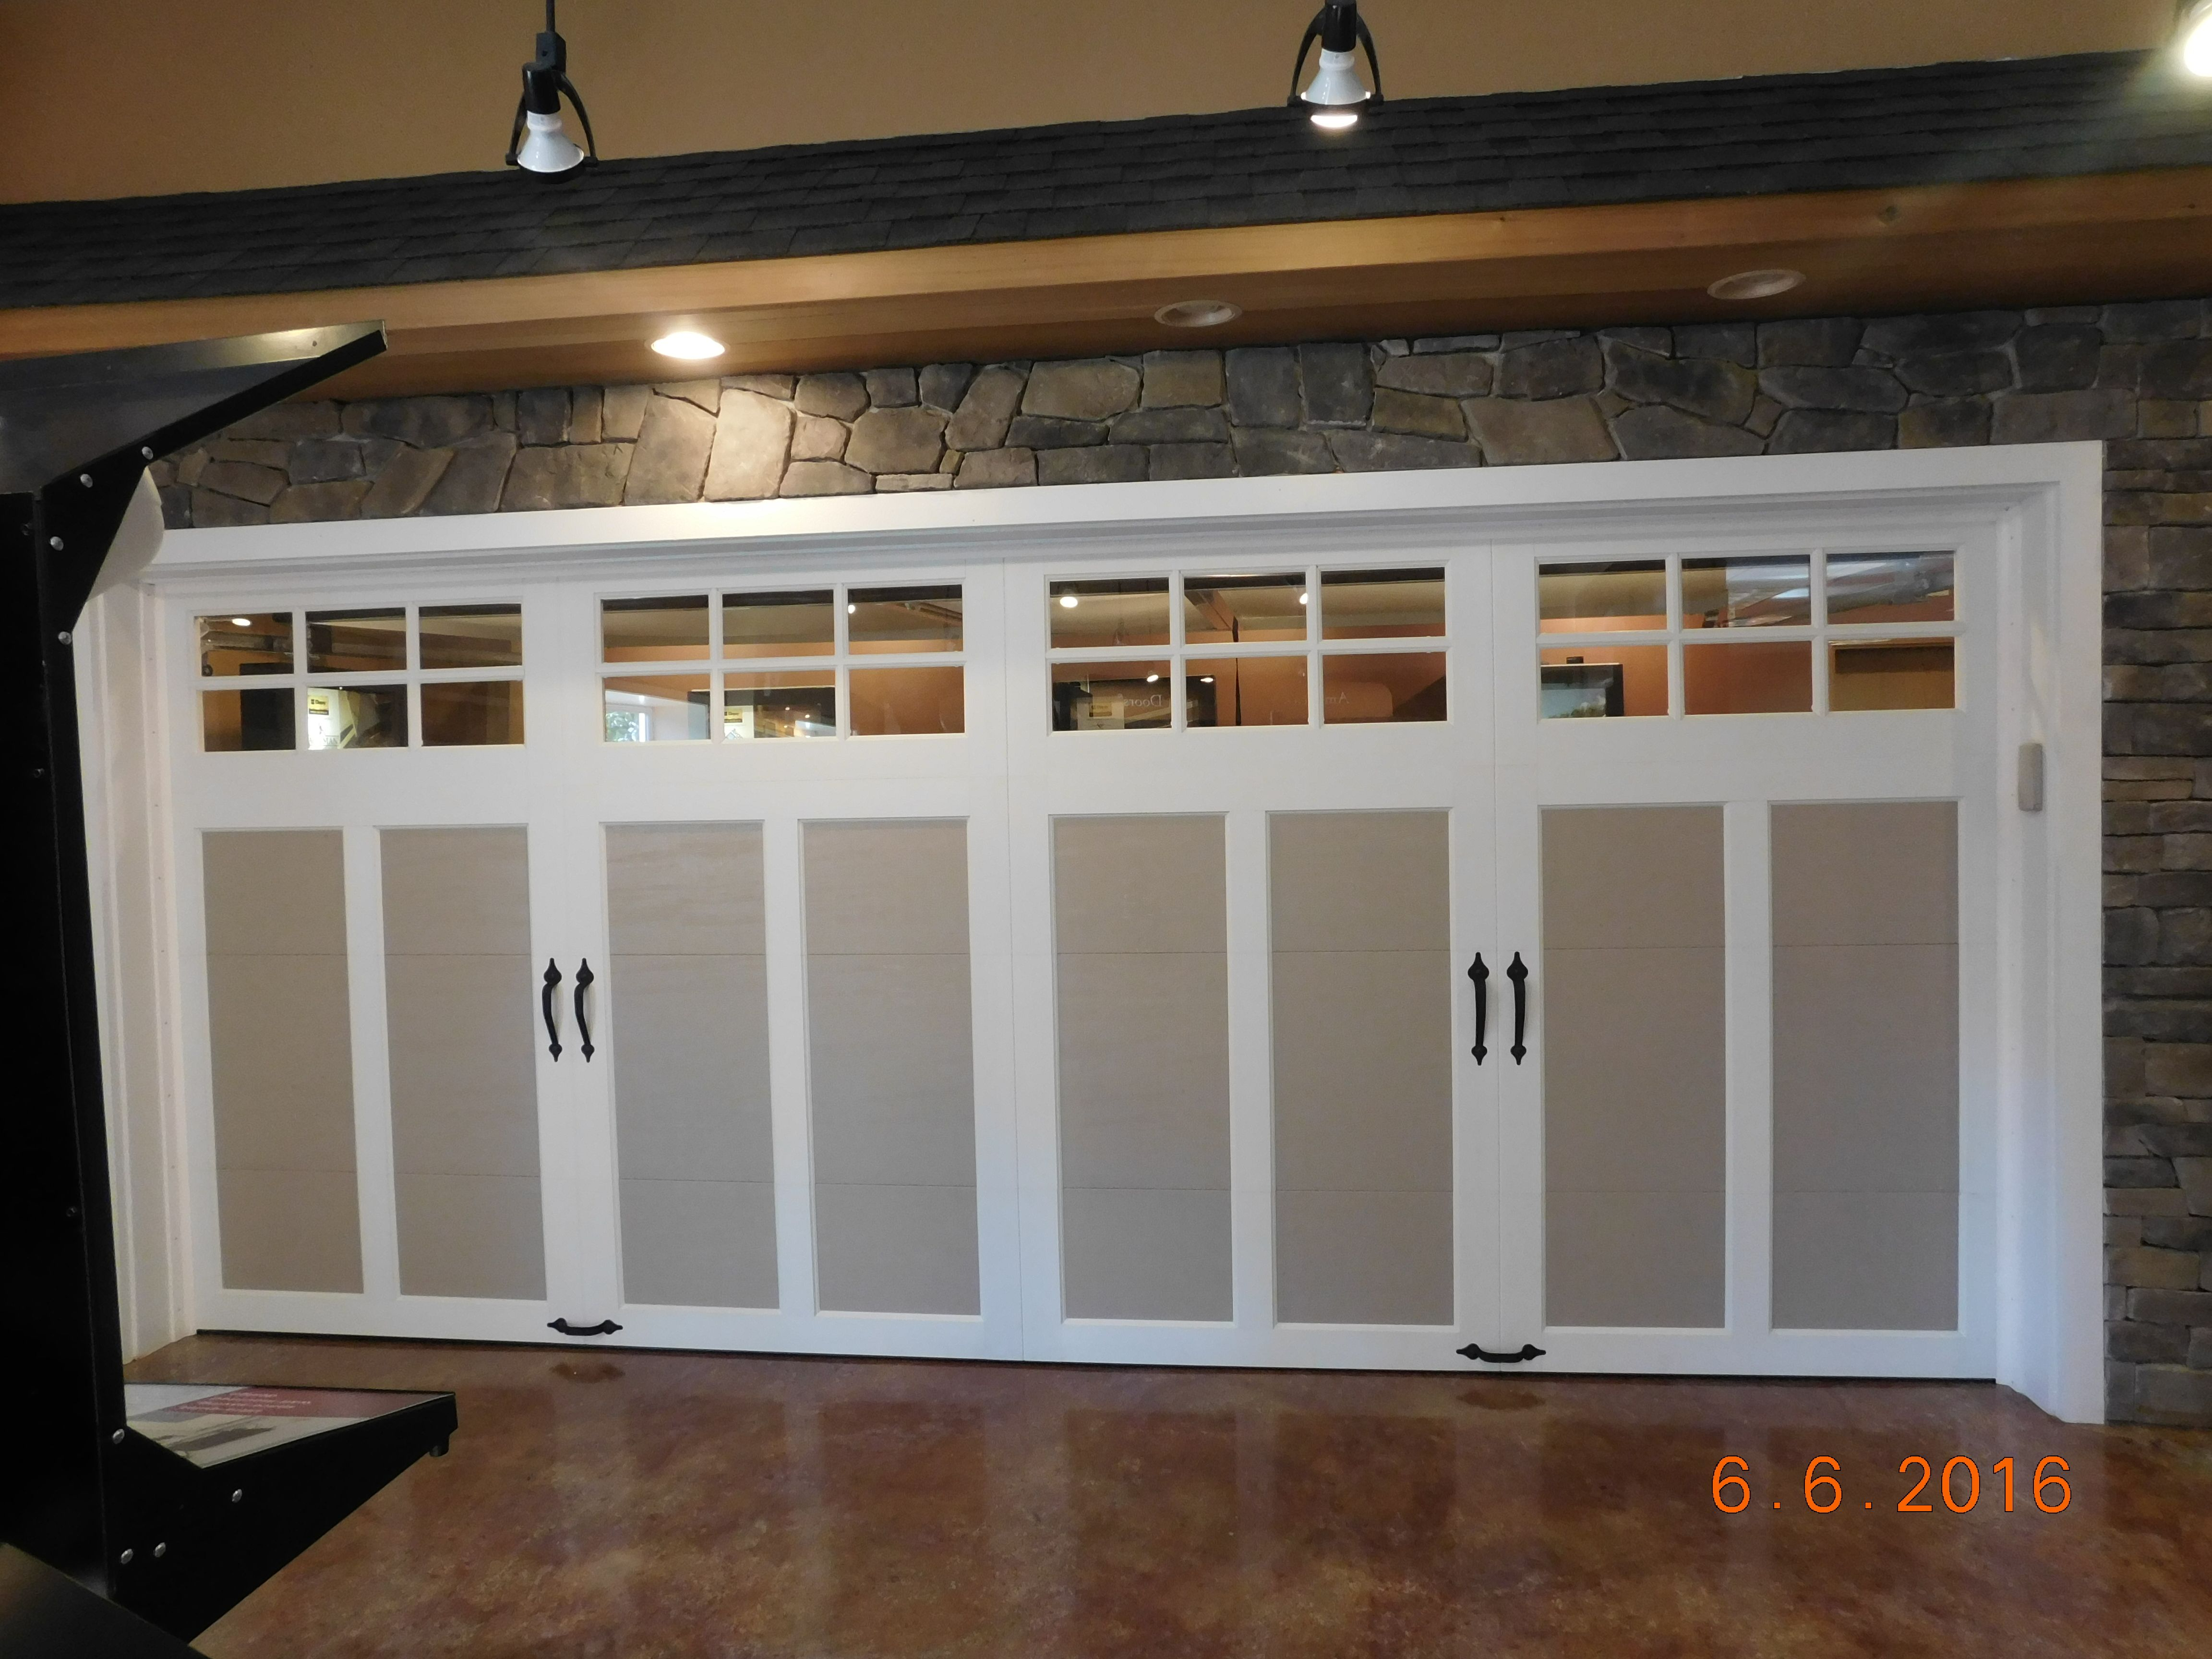 At Kitsap Garage Door We Have A Working Door In Our Showroom. Come In And  See Why We Love Liftmaster Garage Door Motors. You Will Be Surprised At How  Quiet ...